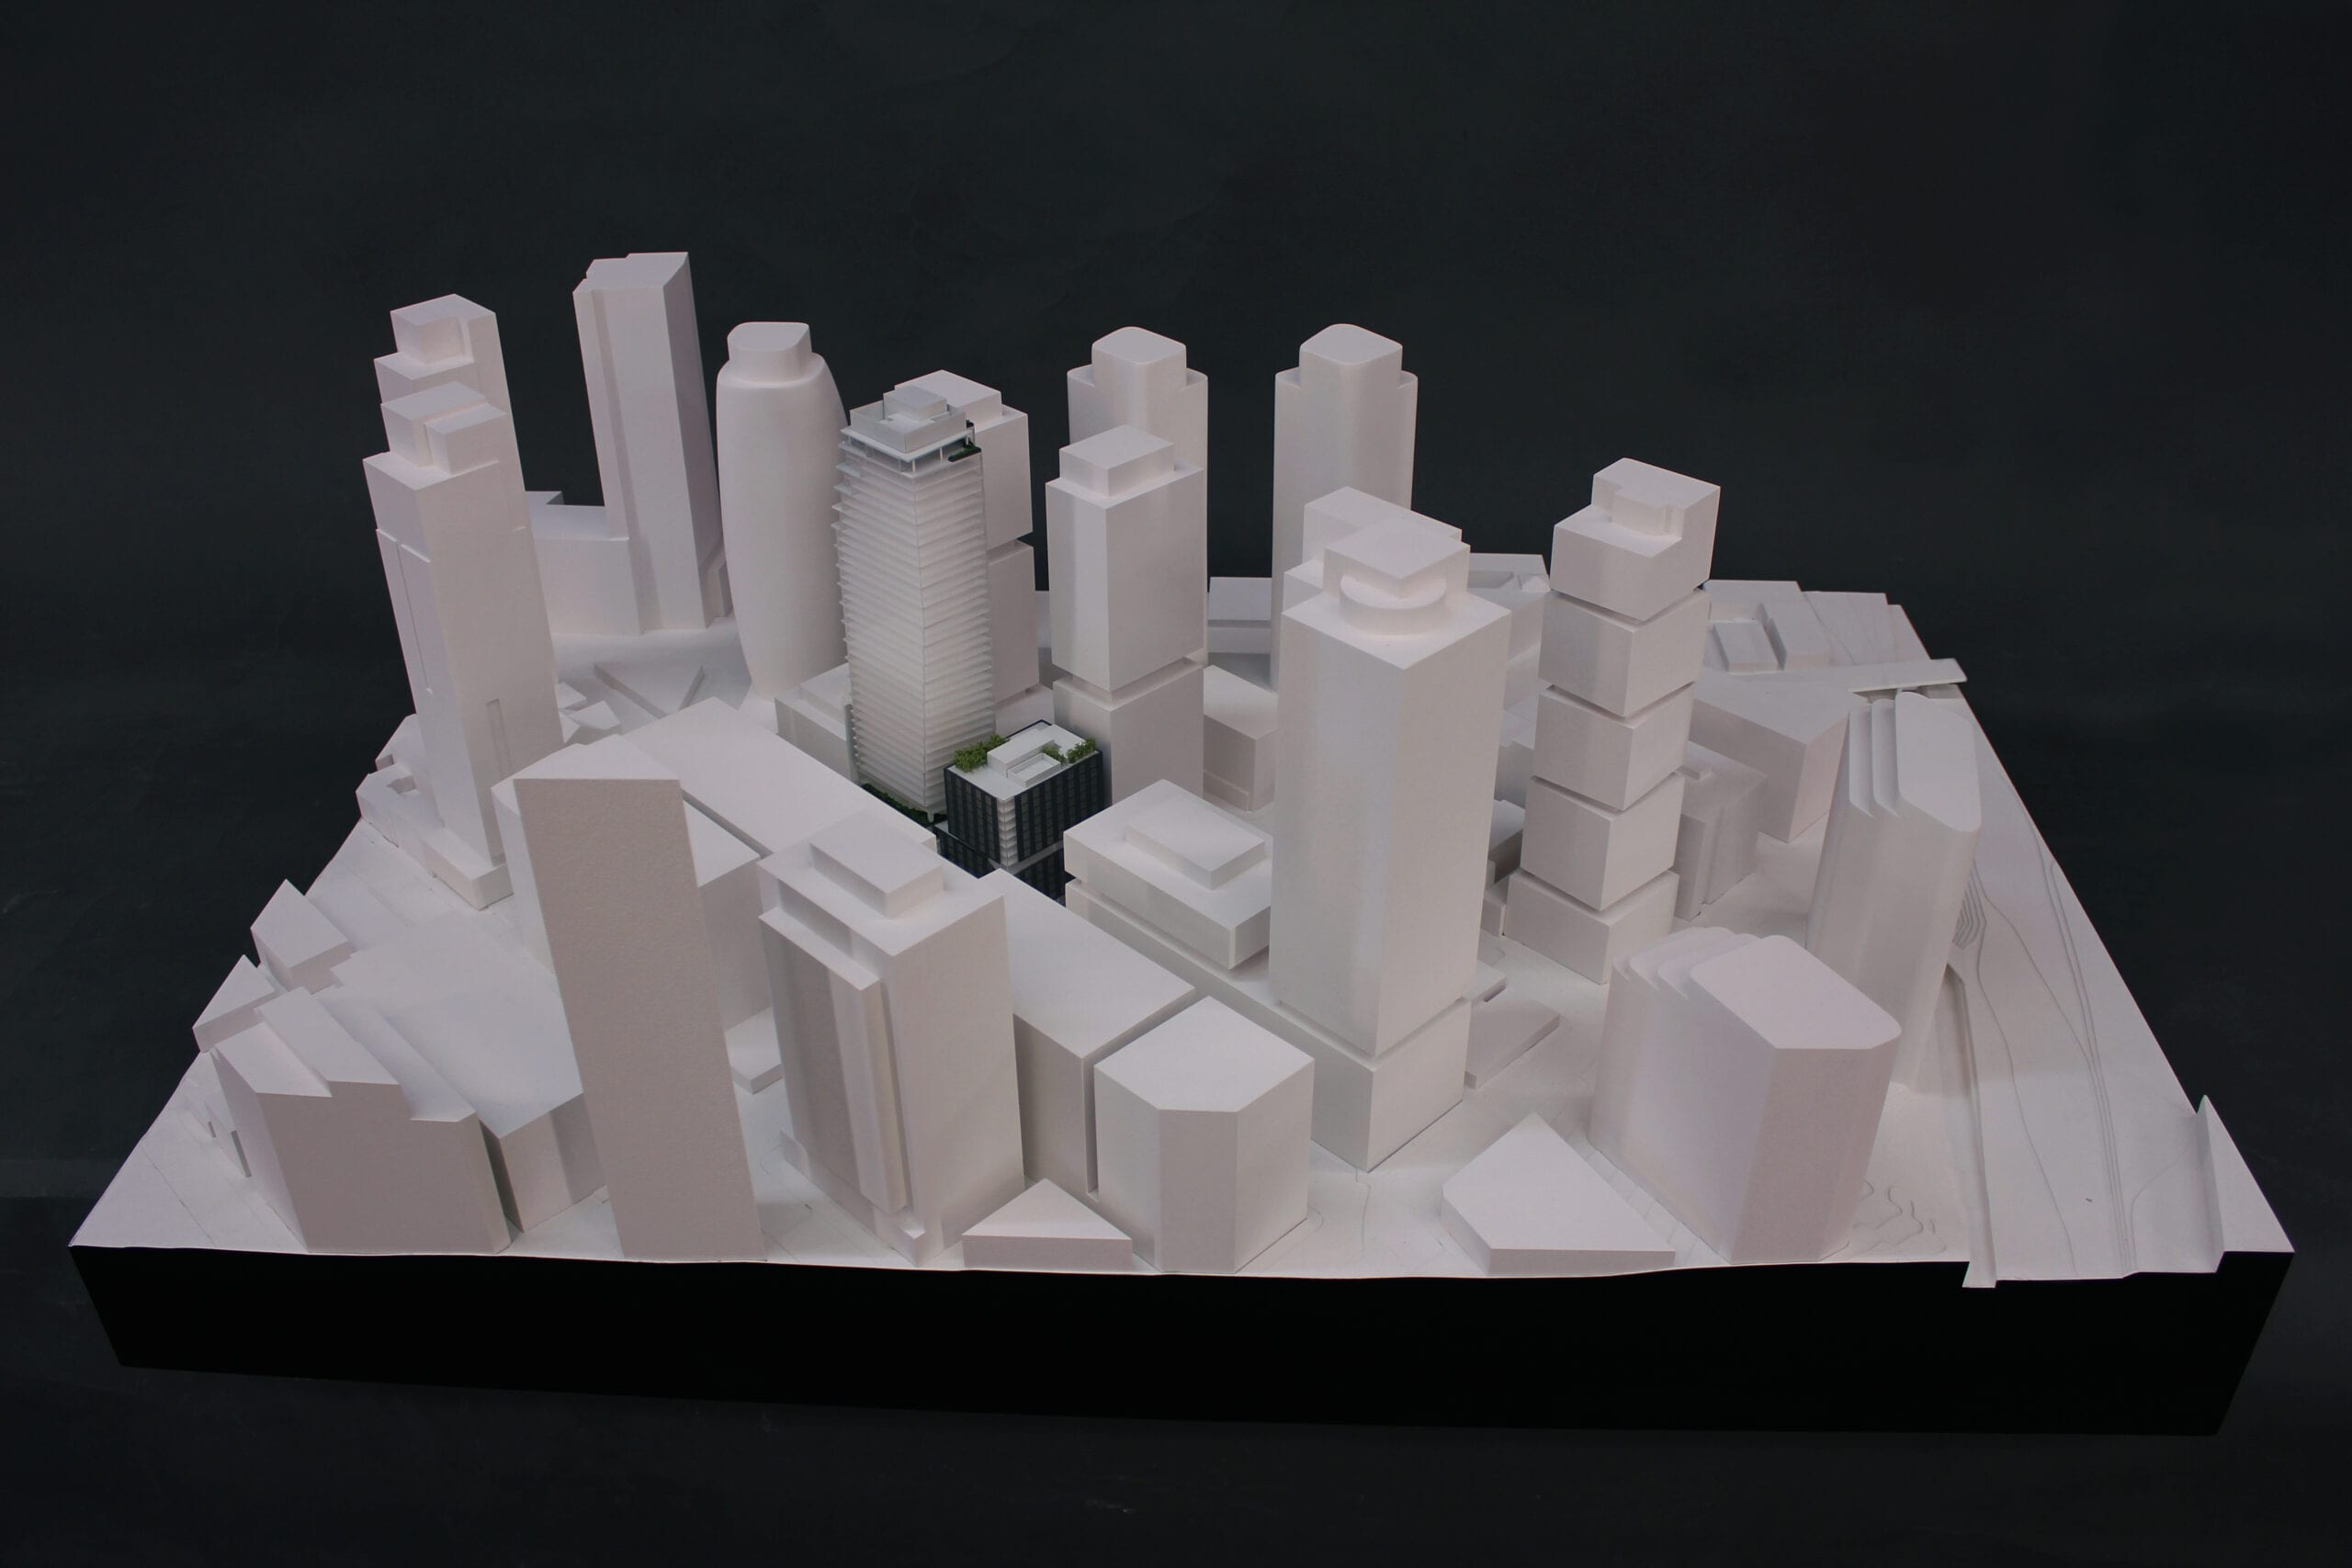 Full view of the architectural scale model of the Boren Project